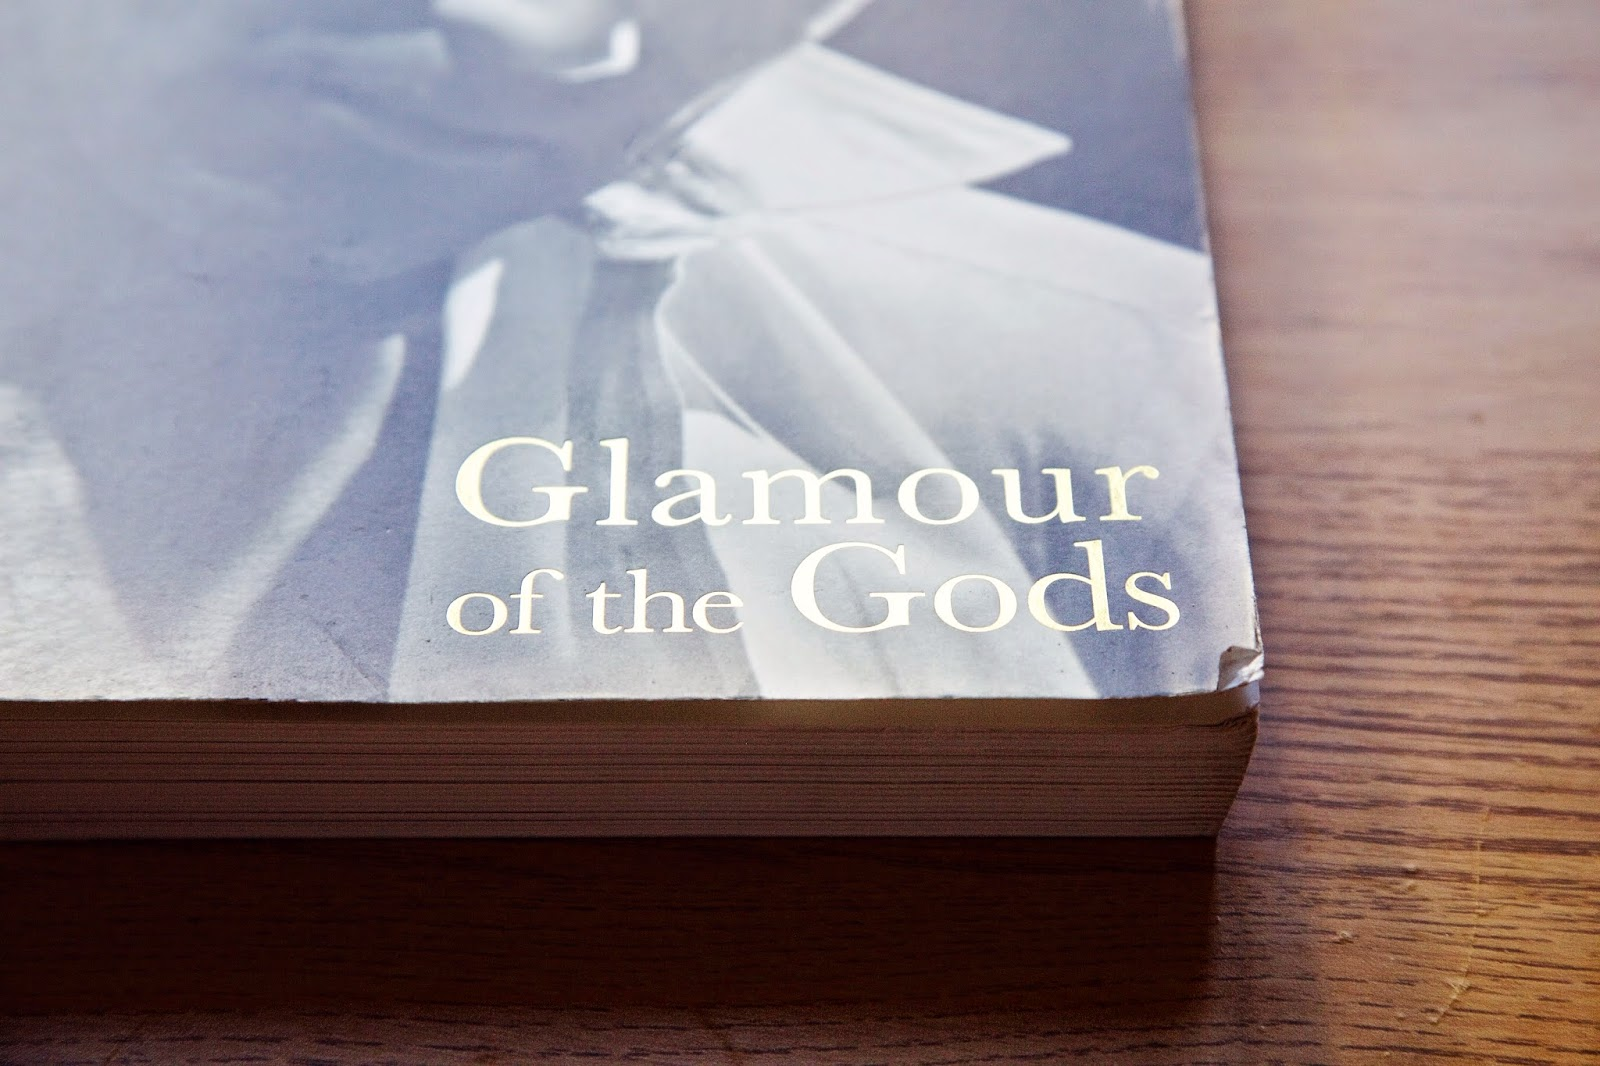 Iu0027m So Happy Because On Todayu0027s Coffee Table Books I Am Bringing You One Of  My Favourite Books To Look At, Glamour Of The Gods By Robert Dance.